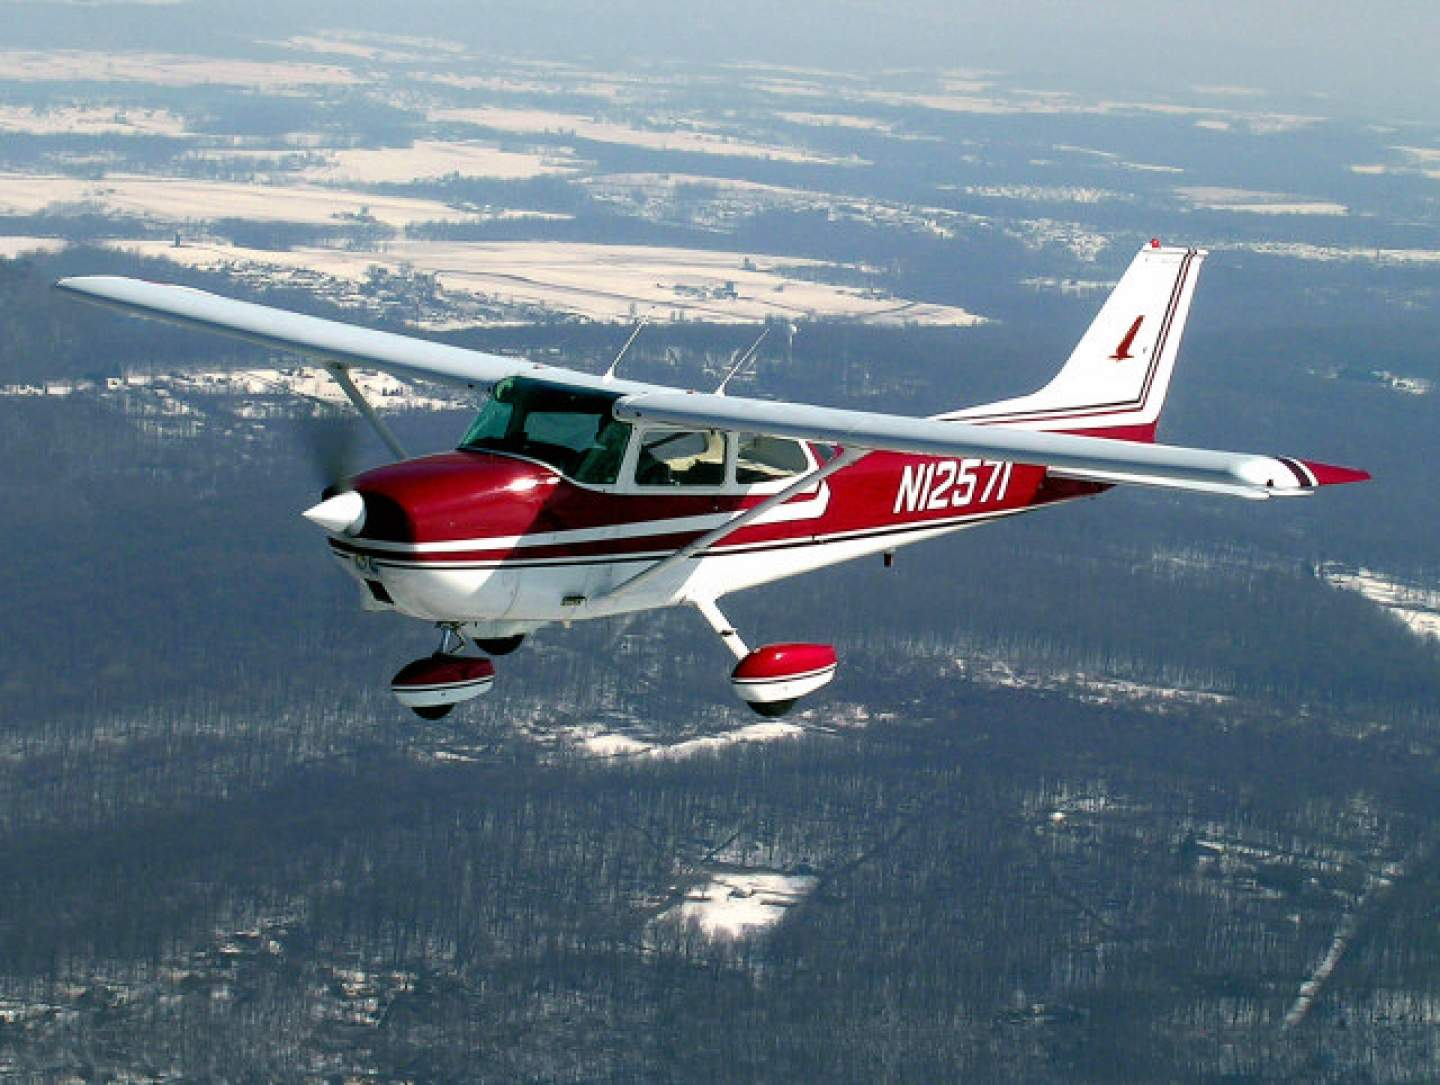 Cessna's 172 Skyhawk is the world's best-selling airplane of all time, with more than 44,000 sold since 1955.